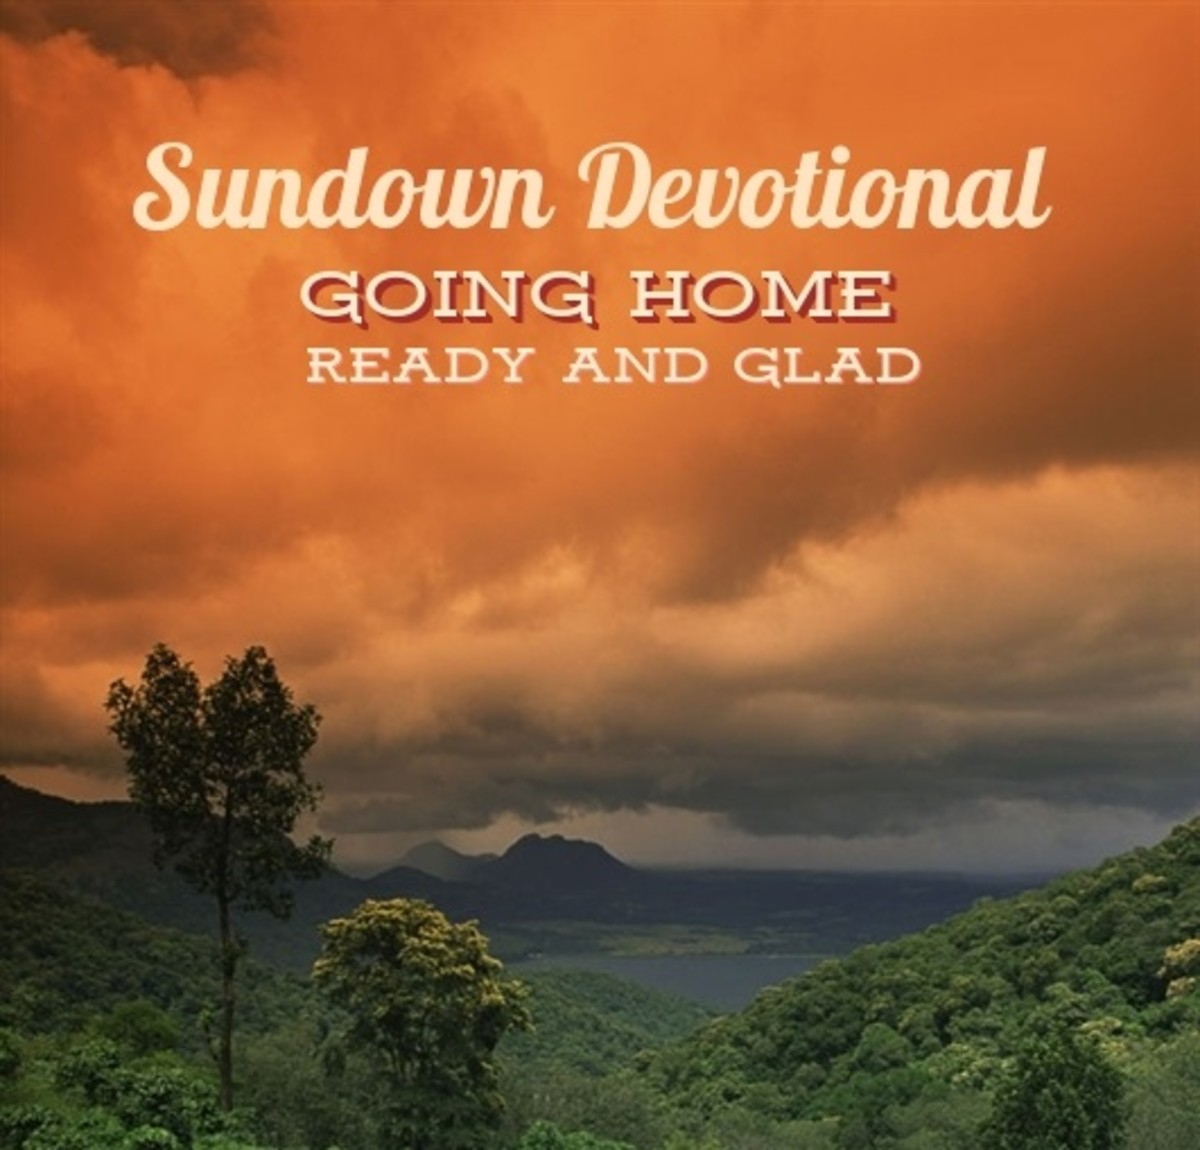 Sundown Devotional: Going Home Ready and Glad